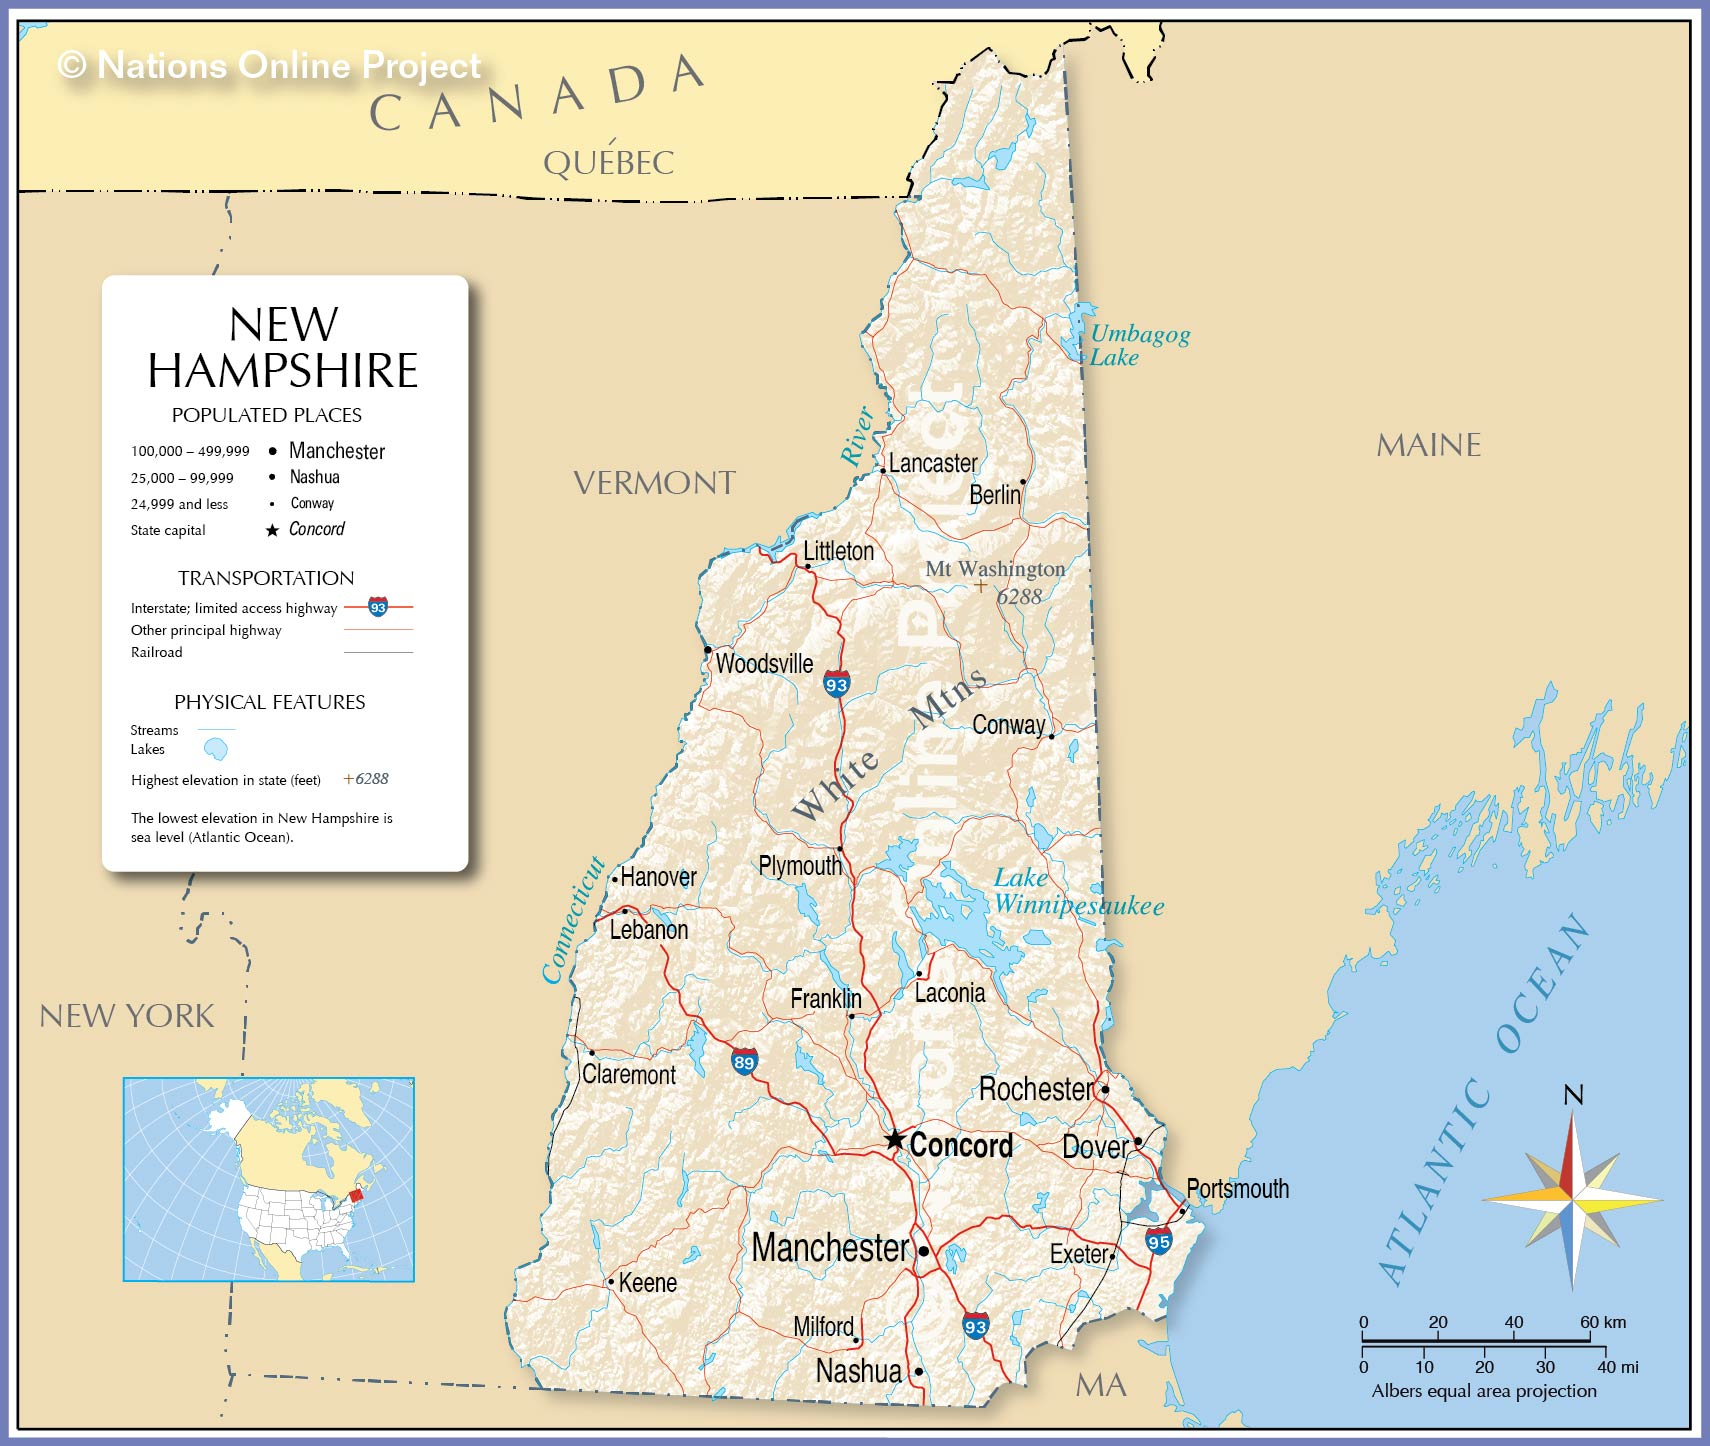 Reference Map Of New Hampshire USA Nations Online Project - New hampshire on the map of usa